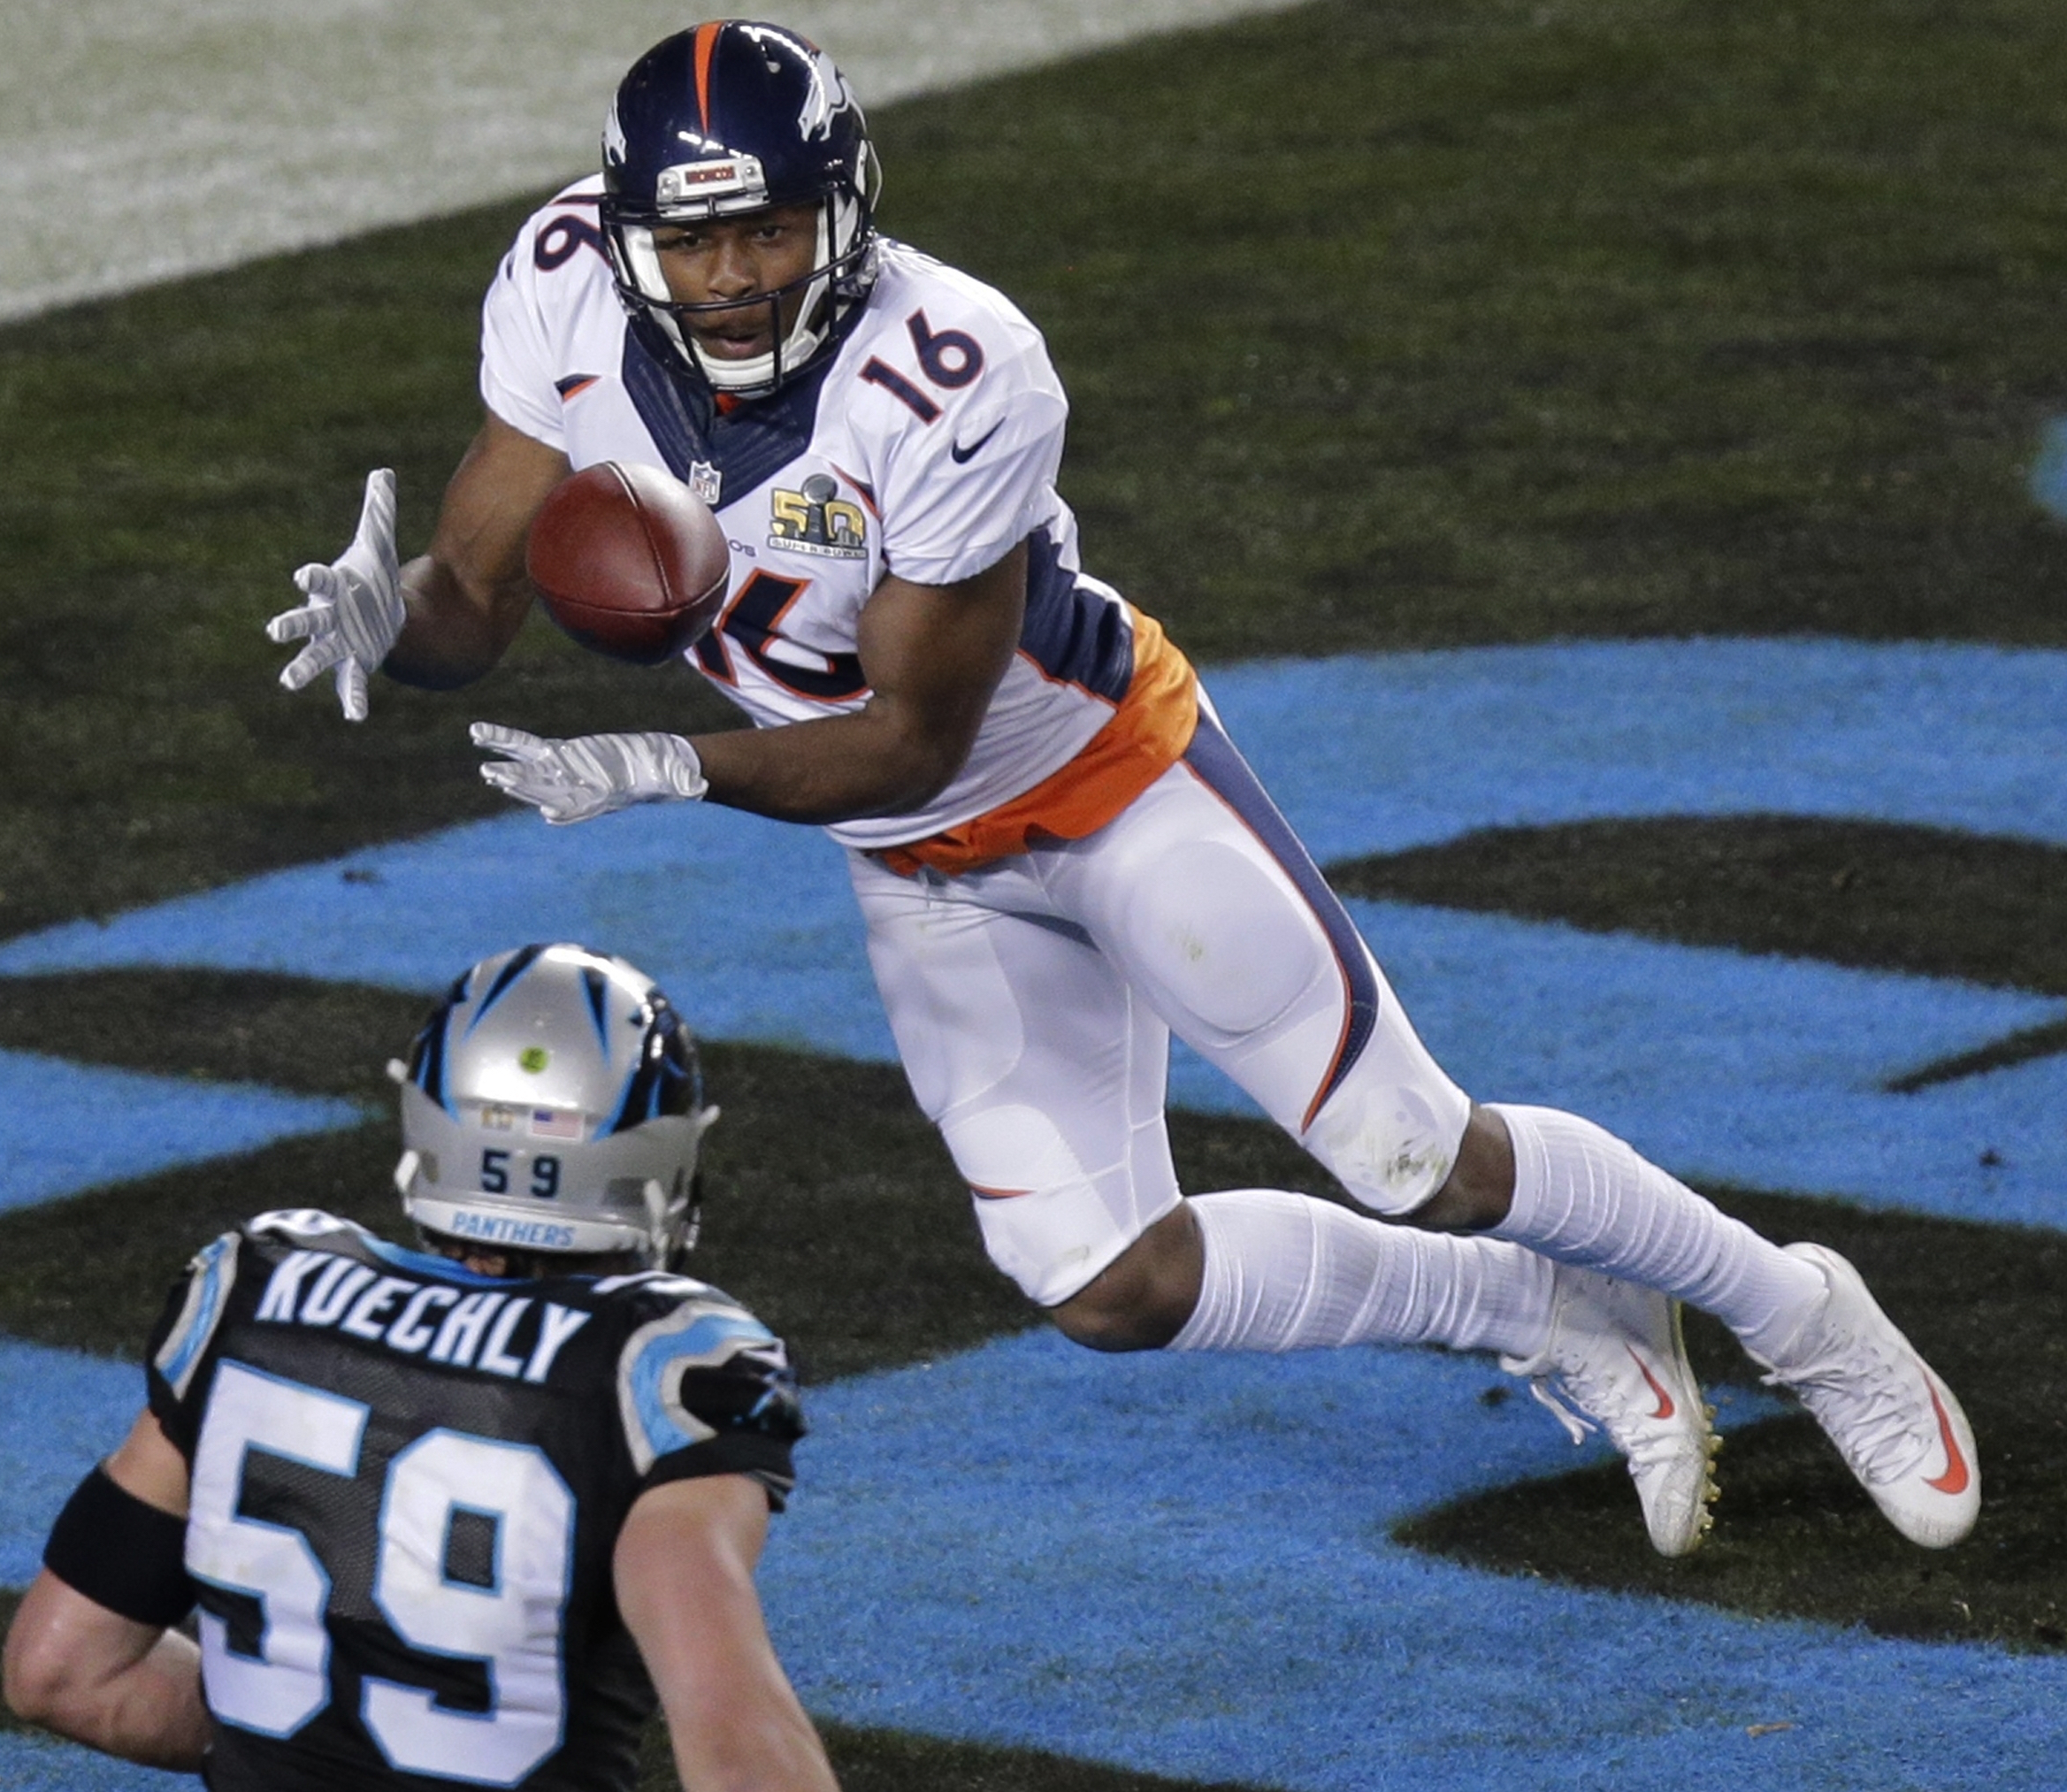 Broncos' Bennie Fowler catches a ball for a two-point conversion, Super Bowl 50 (AP6)